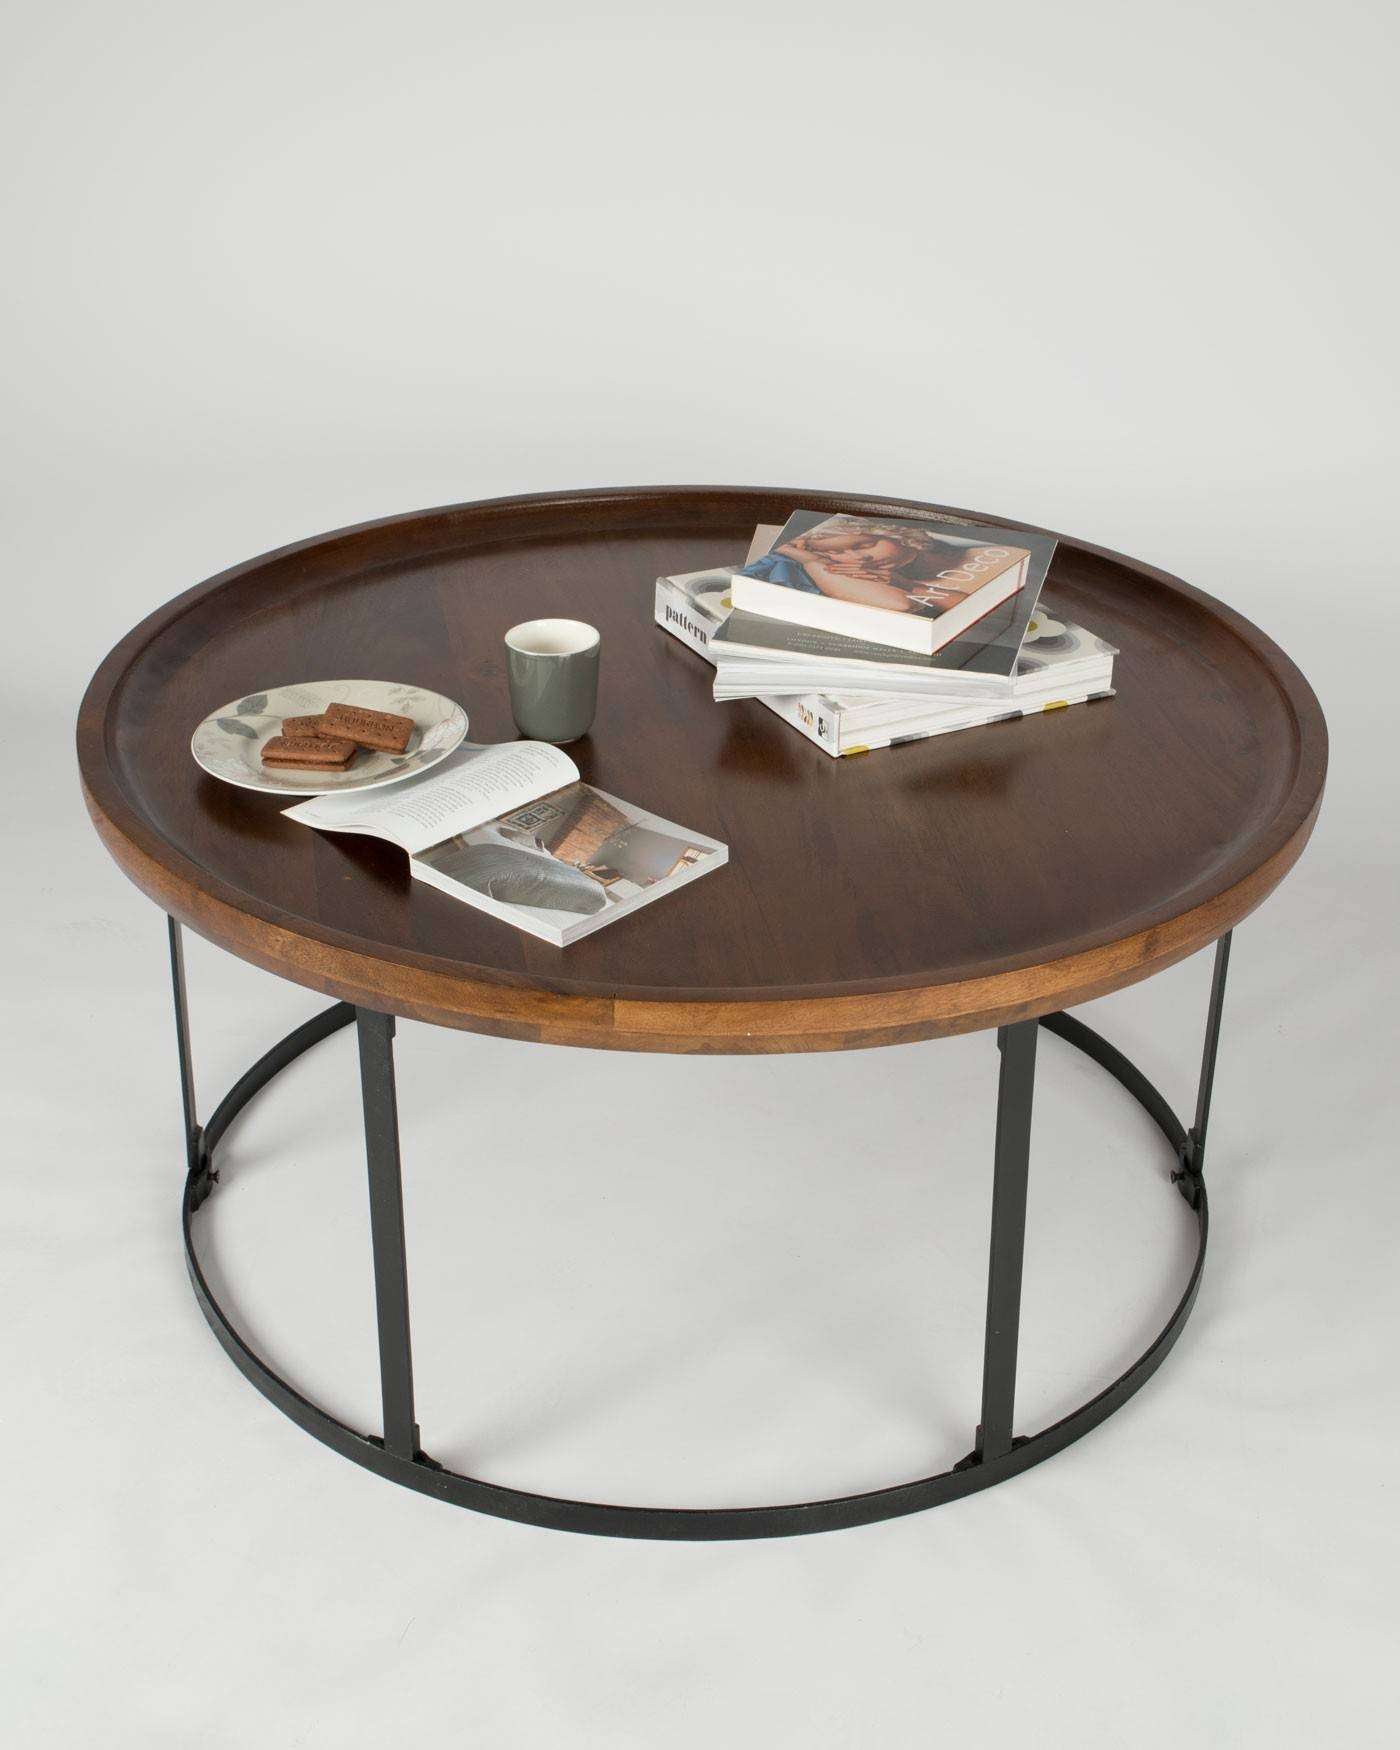 Industrial Round Coffee Table With Dark Wood Top And Steel Frame with regard to Industrial Round Coffee Tables (Image 11 of 15)